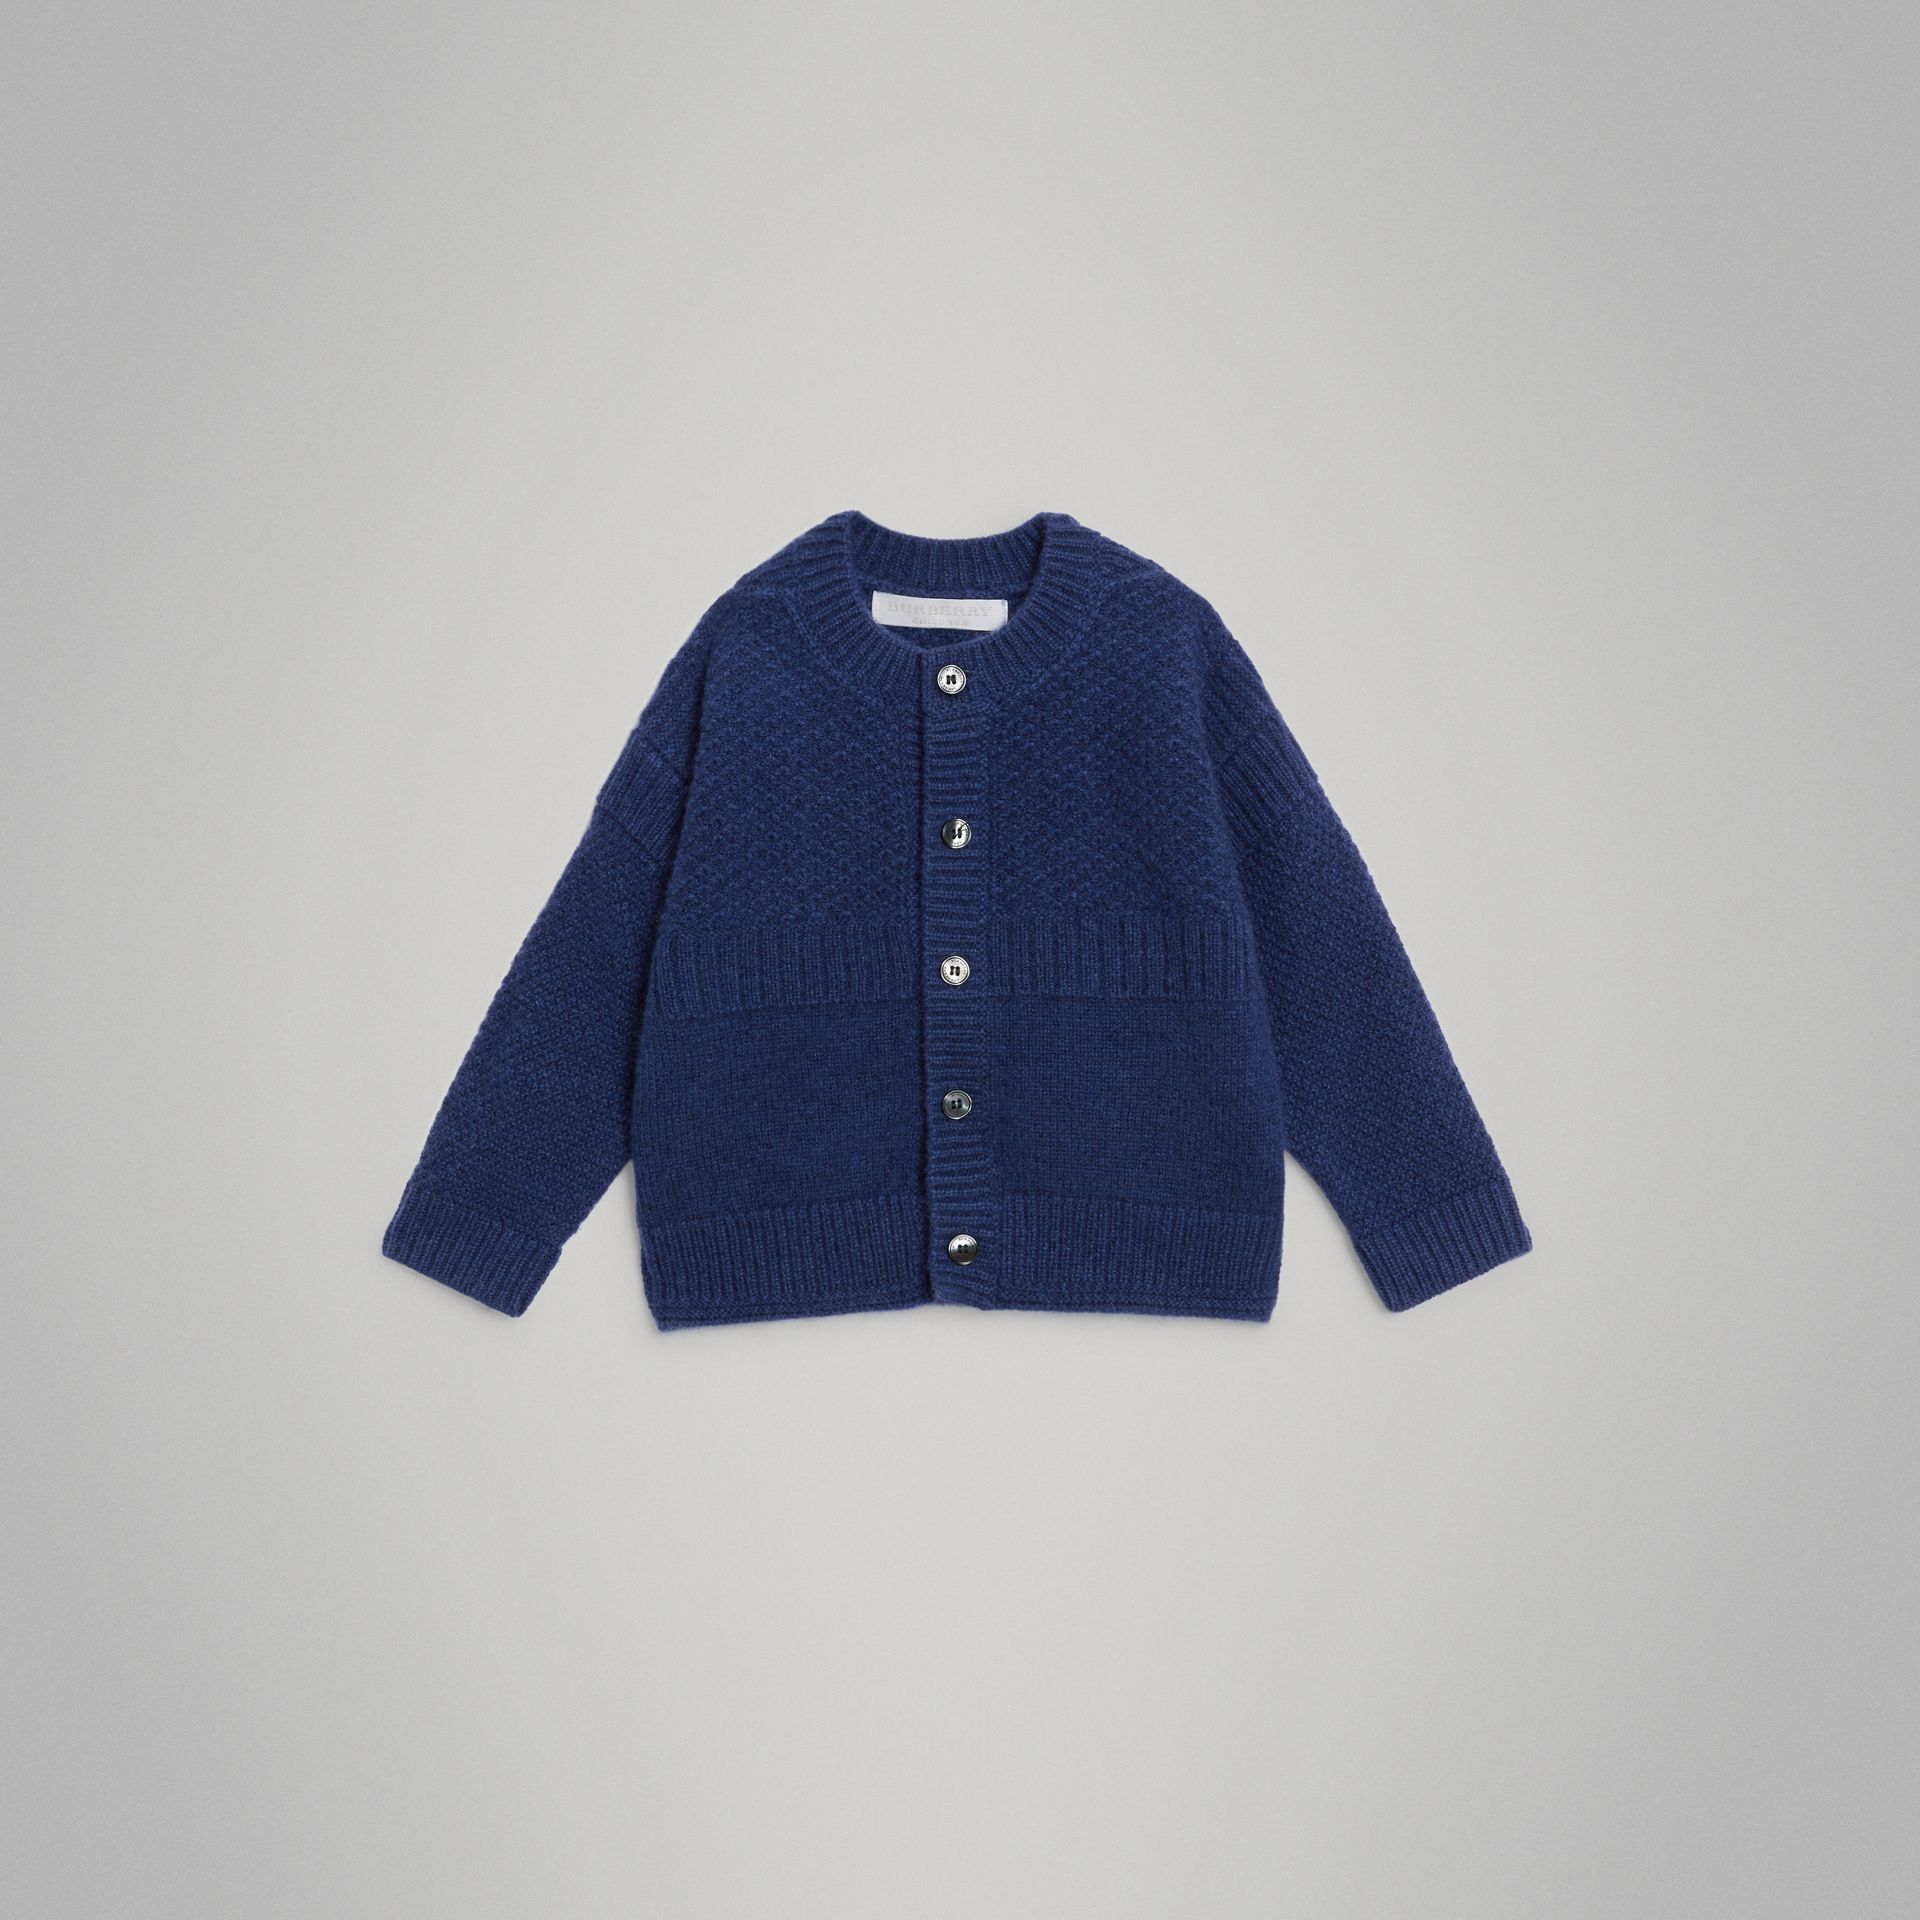 Cashmere and Cotton Three-piece Baby Gift Set in Bright Navy - Children | Burberry United Kingdom - gallery image 5